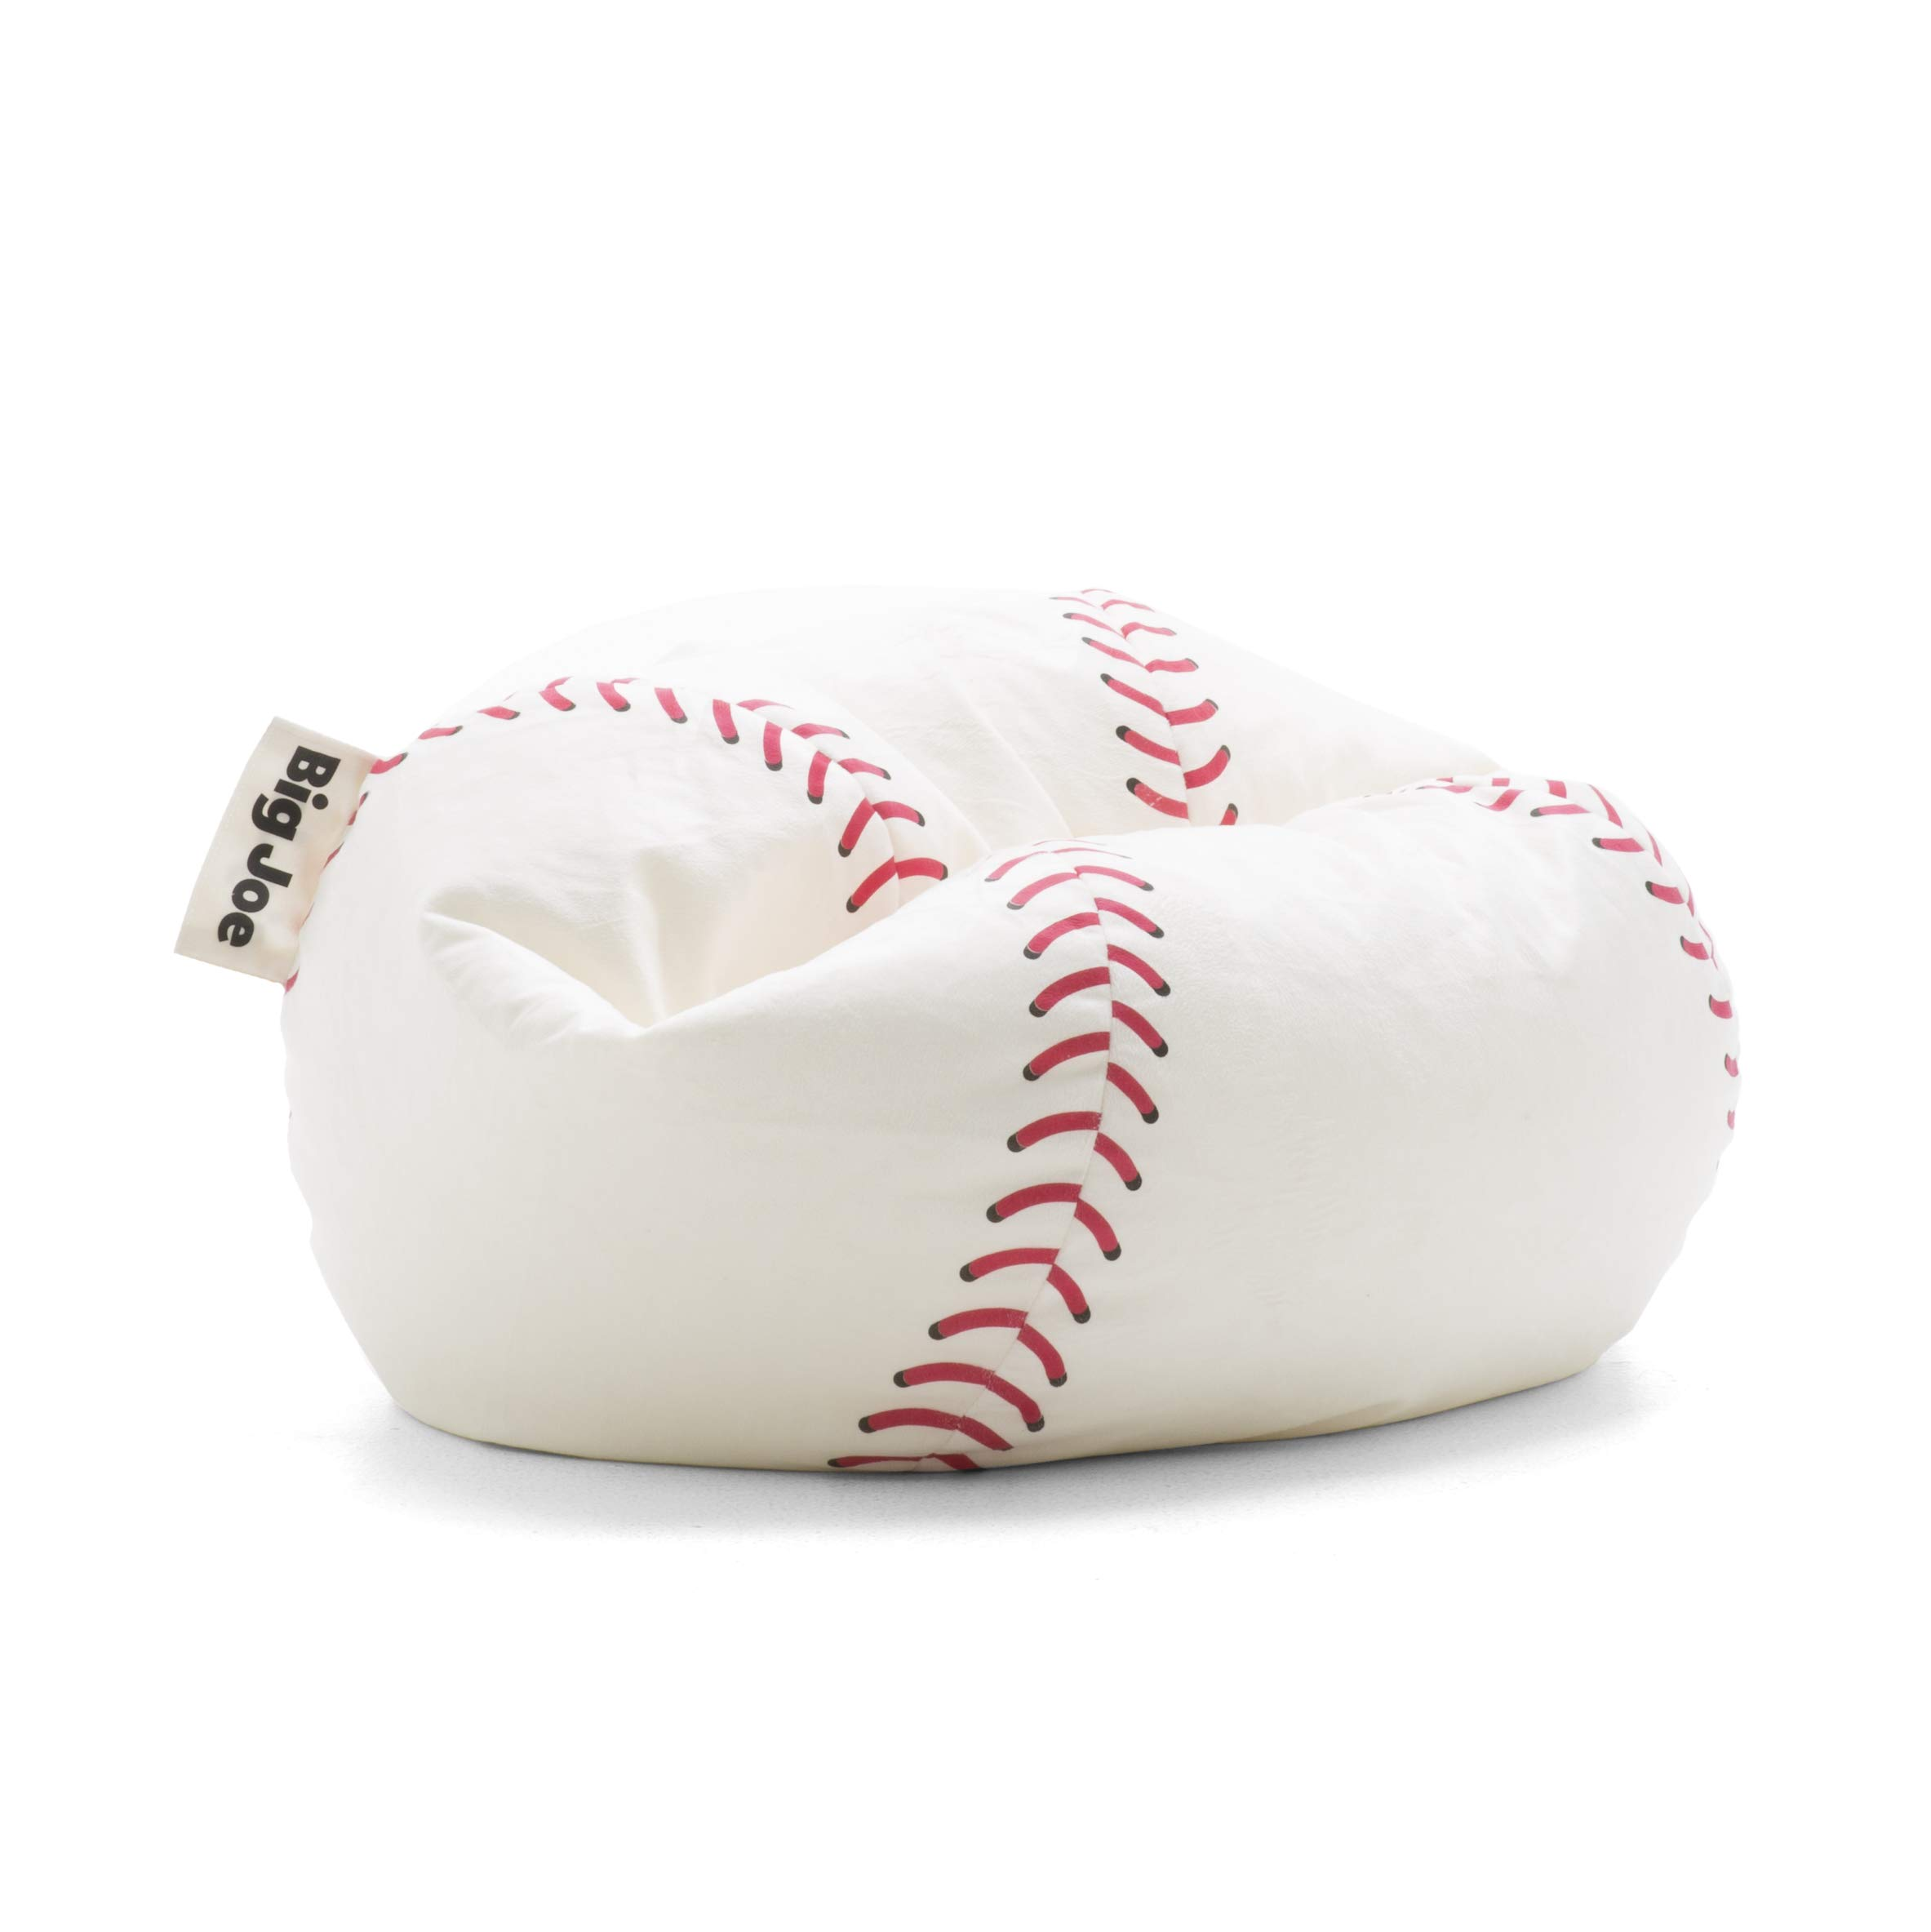 Big Joe 0614536 Sportsball Baseball Plush, White by Big Joe